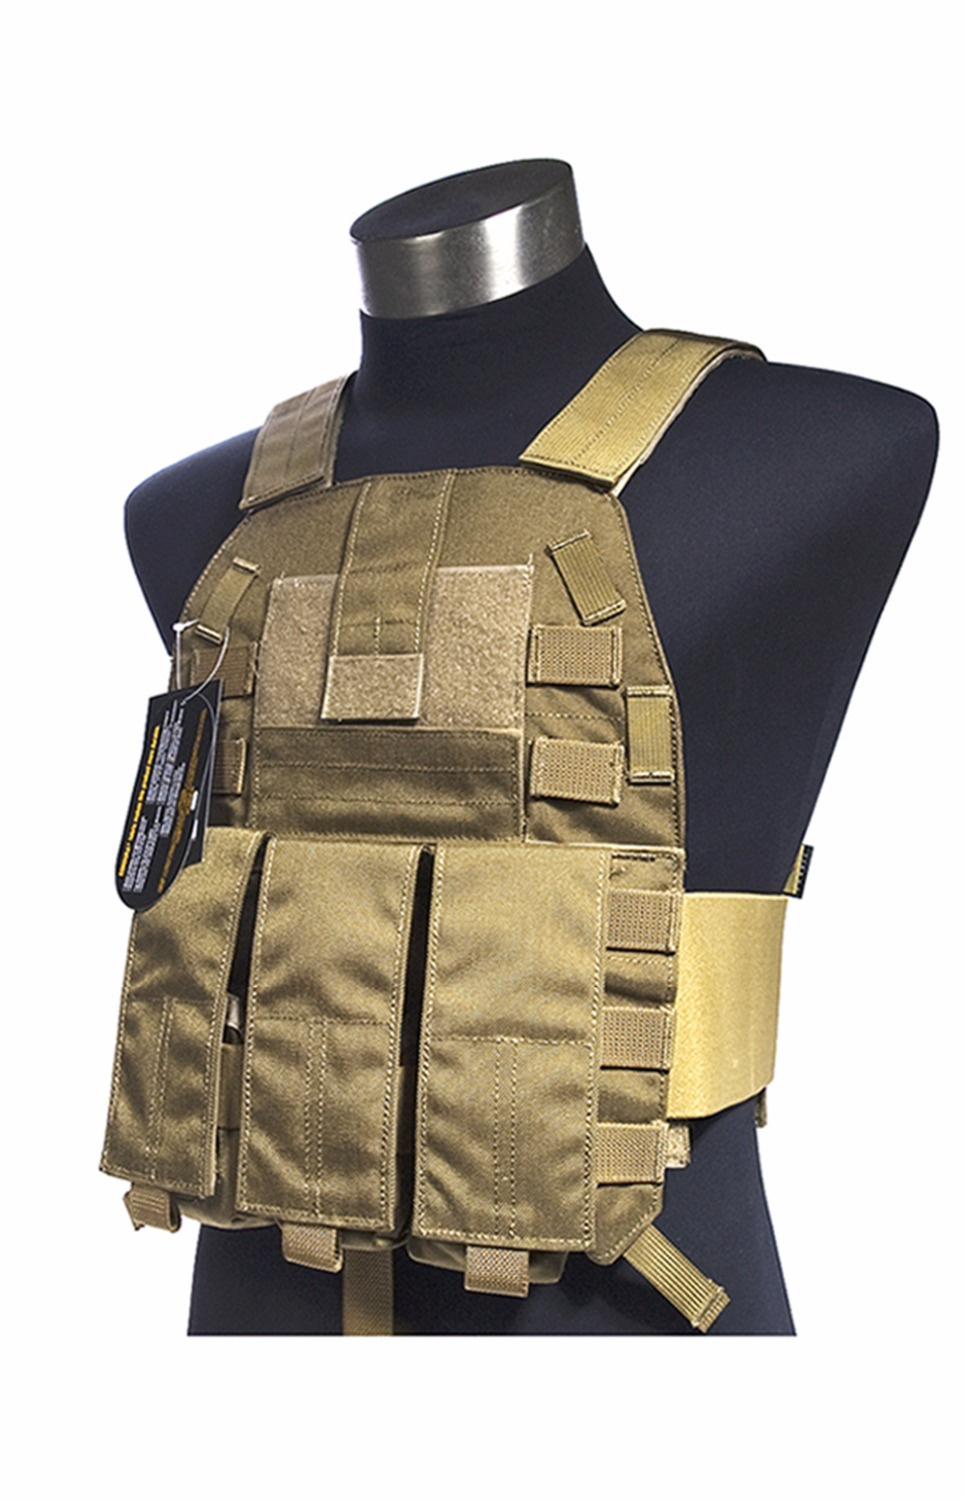 MILITECH Mil Spec Military LT6094K Coyote Brown CB Plate Carrier Combat Molle Tactical Vest Army Military Combat Vests Carrier circular mil spec tools hardware